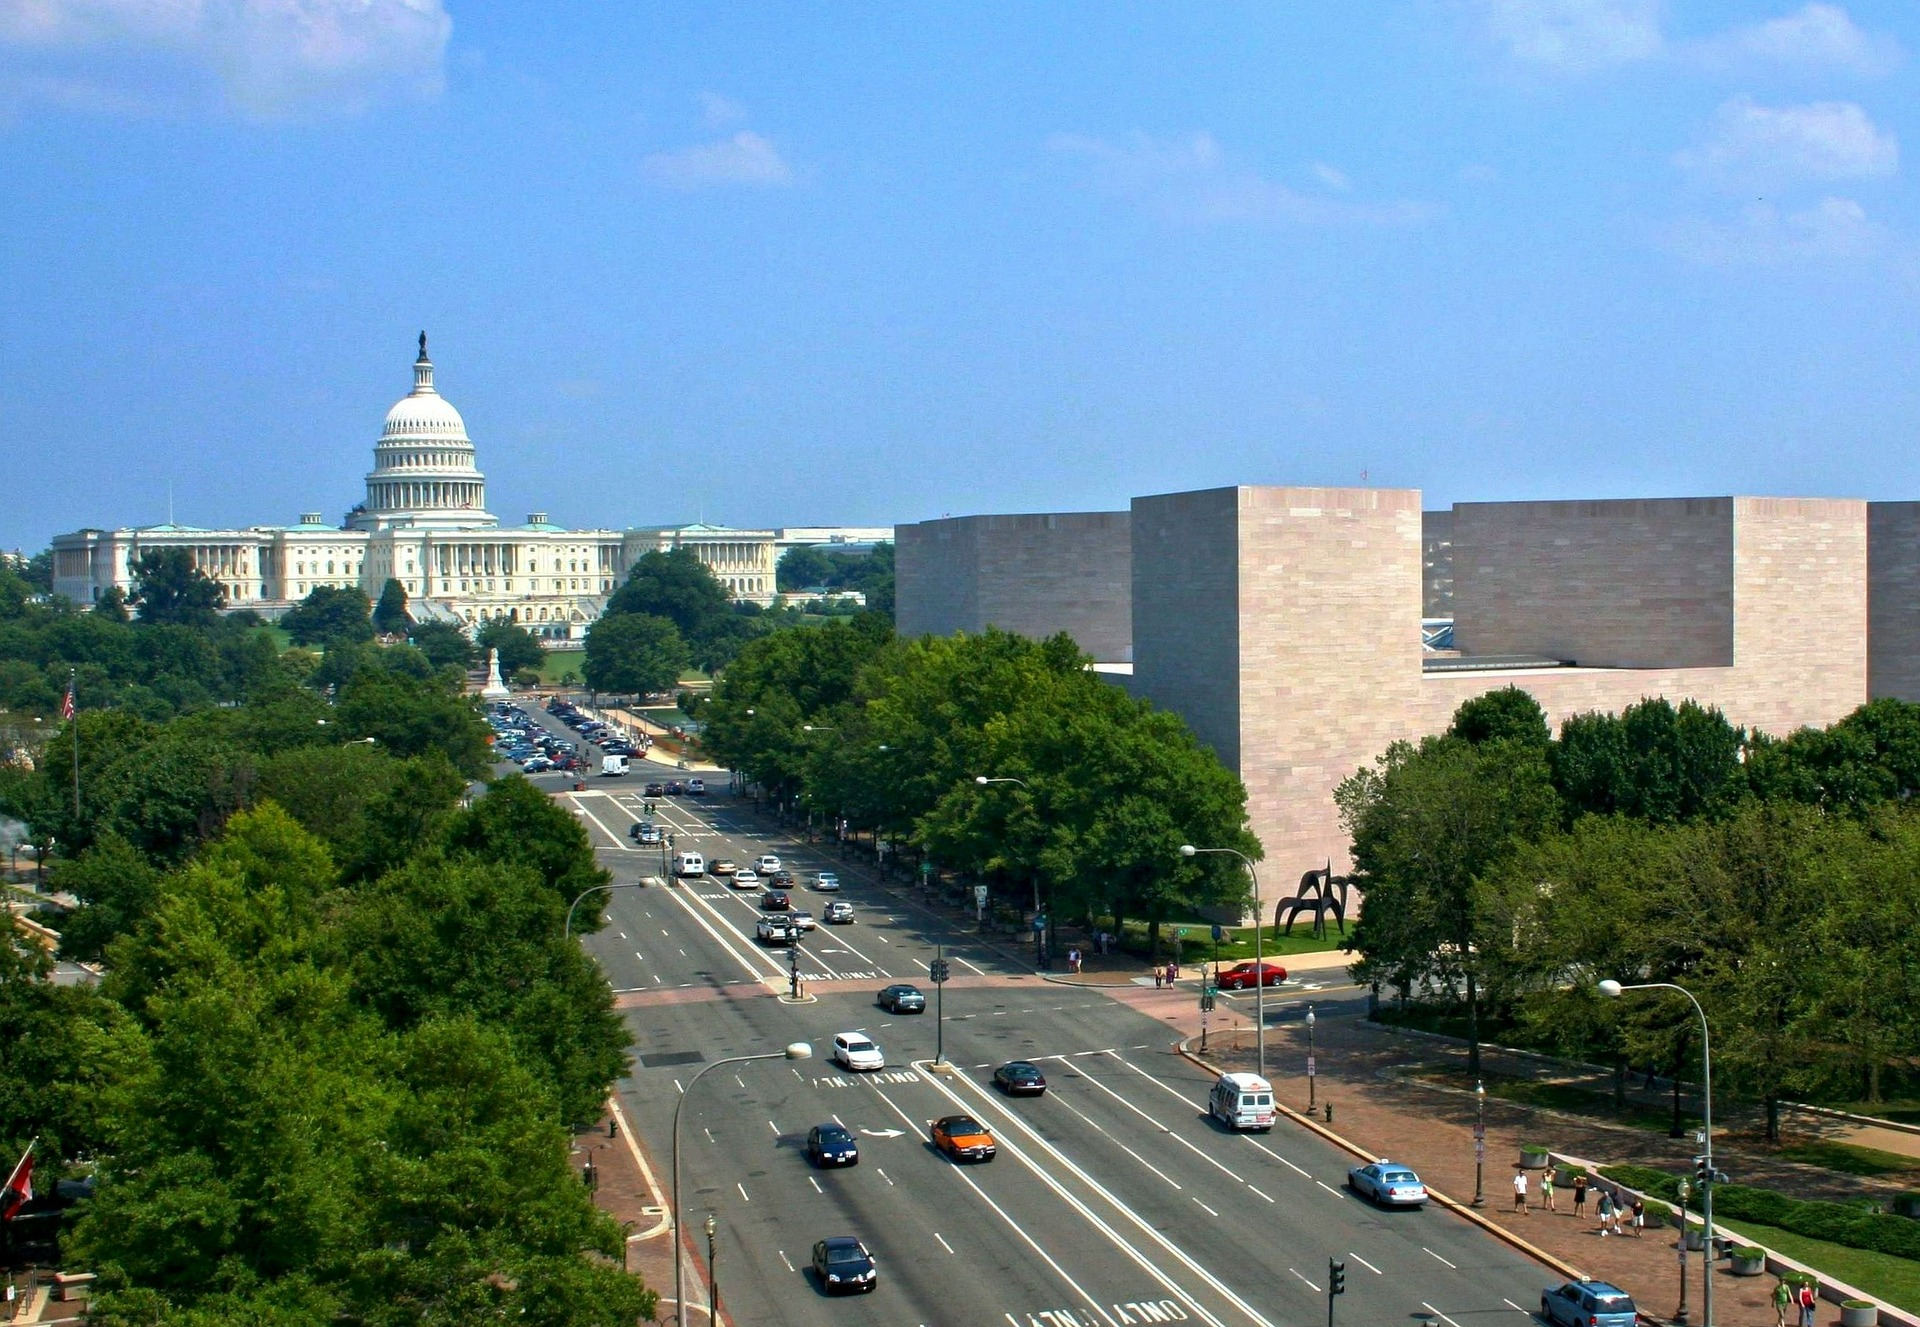 washington-dc-56722_1920